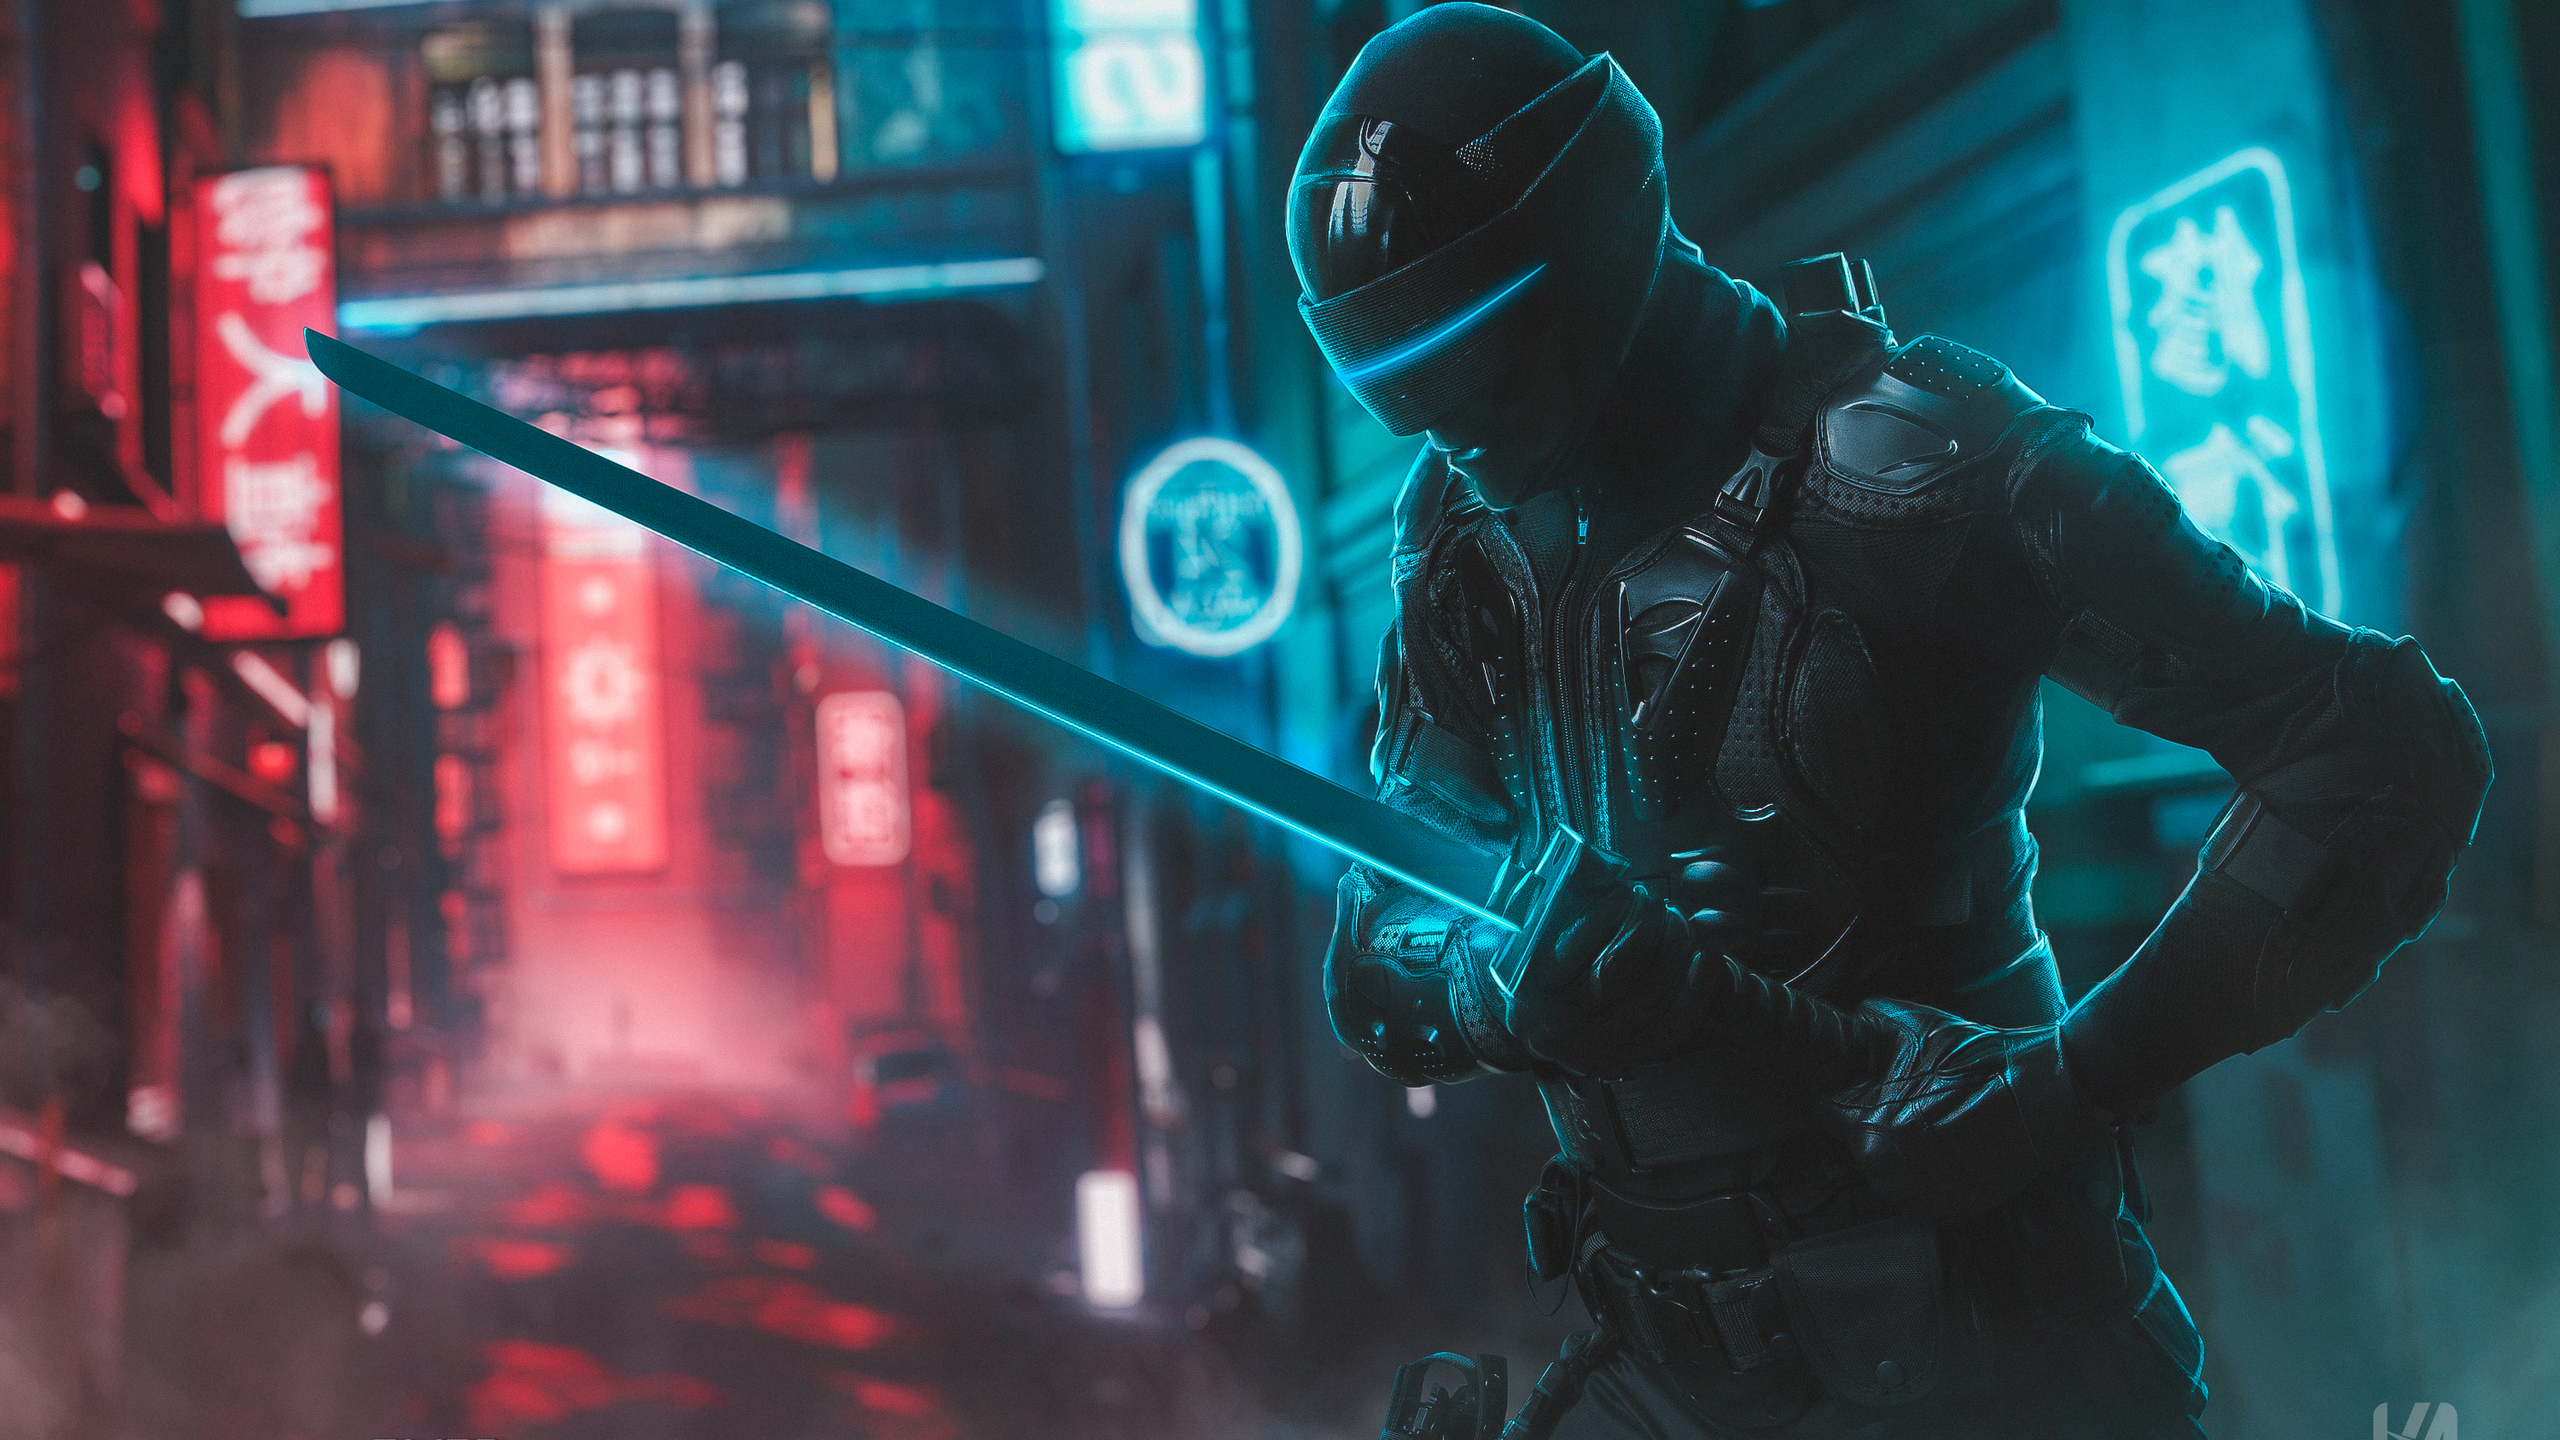 General 2560x1440 digital digital art artwork Ninja sword city urban modern lights city lights building neon neon lights blue red bokeh cyber futuristic futuristic armor cyberpunk dark Dark Cyberpunk Japan cyan